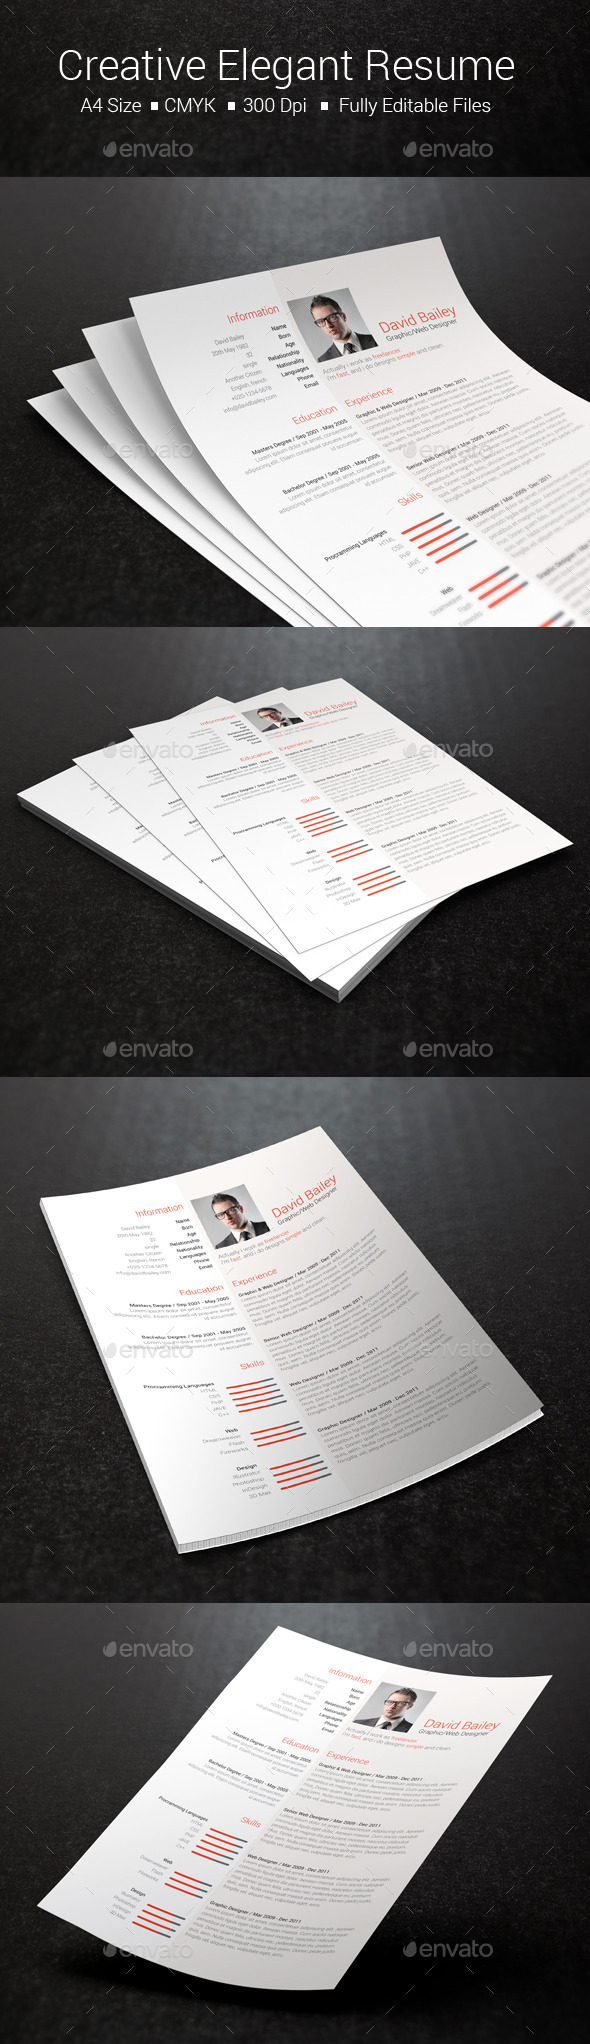 GraphicRiver Creative Elegant Resume 10469970